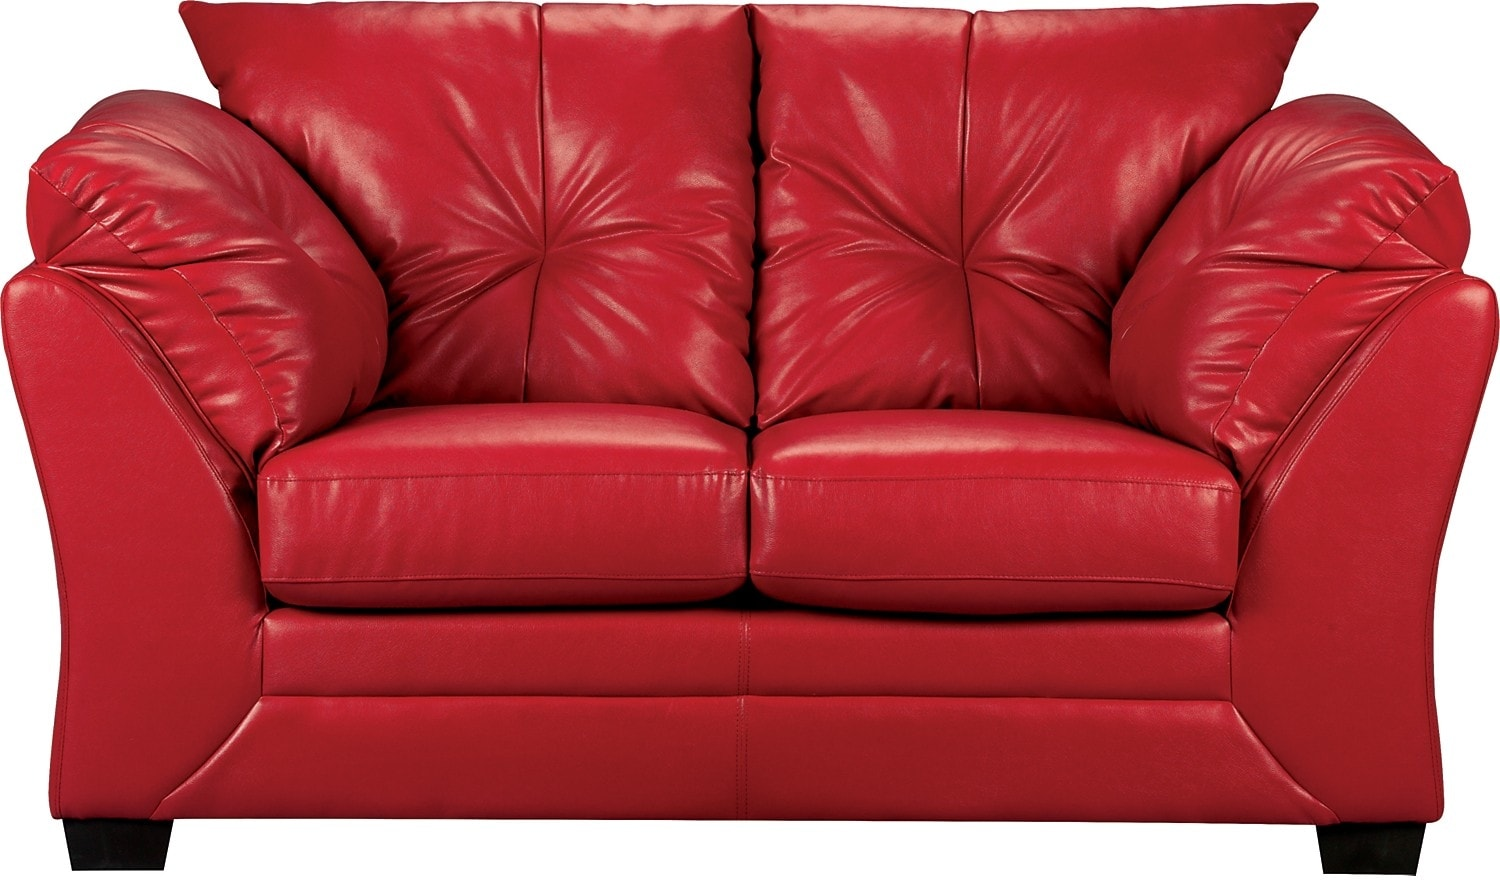 Max Faux Leather Full Size Sofa Bed Red The Brick